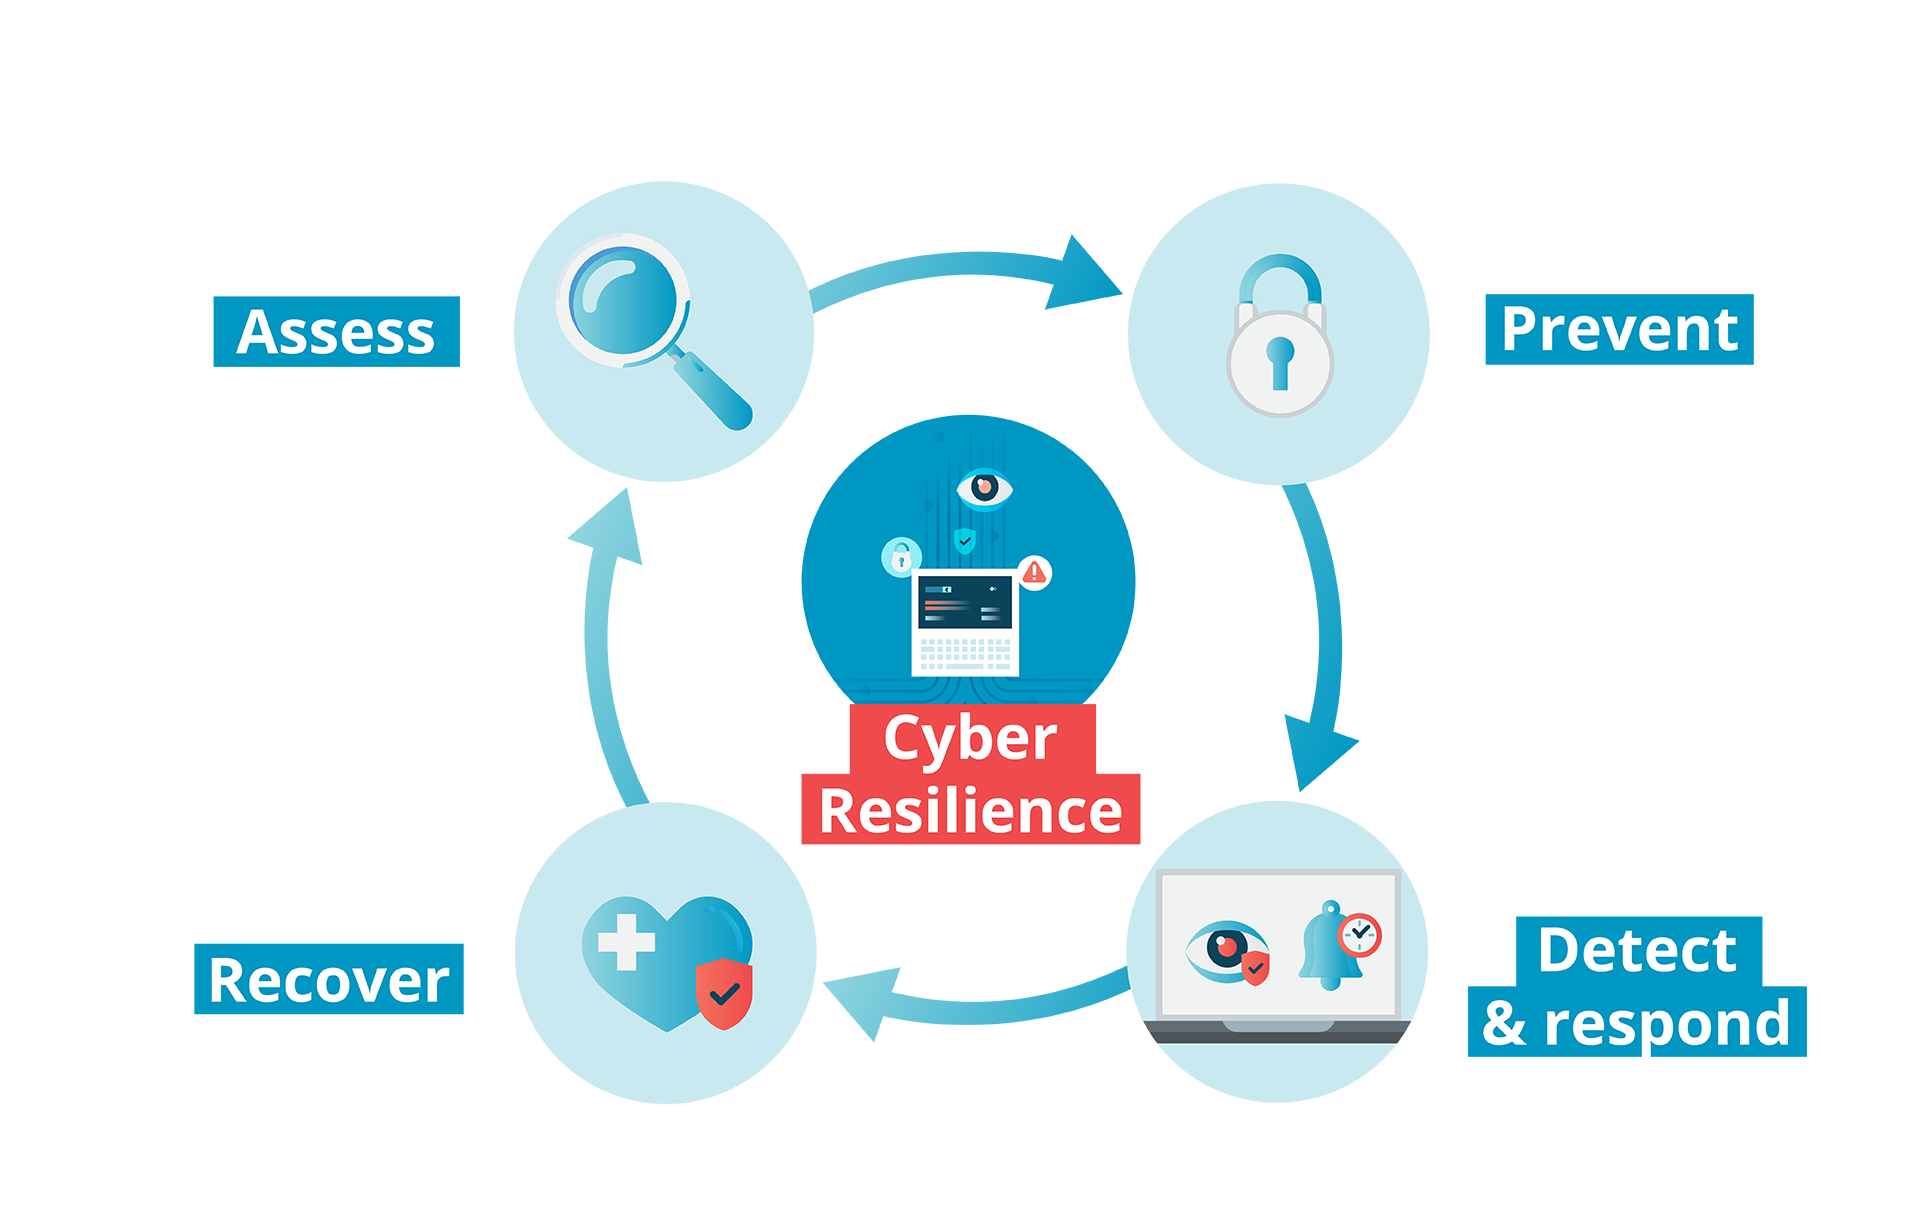 Cybersecurity requires a full-scale approach